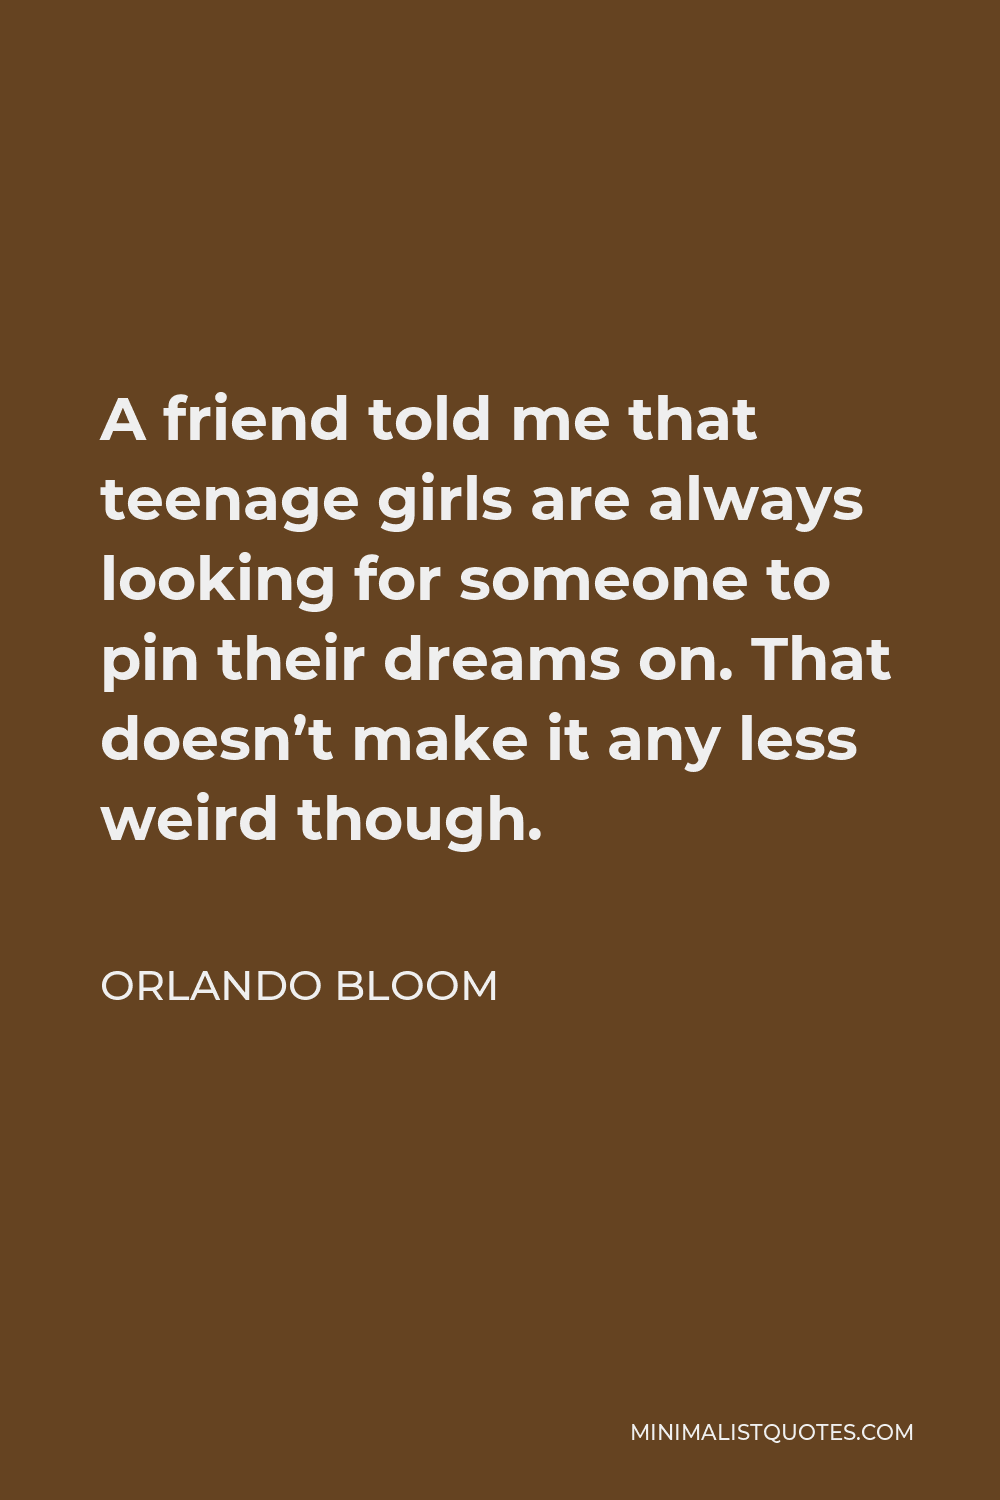 Orlando Bloom Quote - A friend told me that teenage girls are always looking for someone to pin their dreams on. That doesn't make it any less weird though.